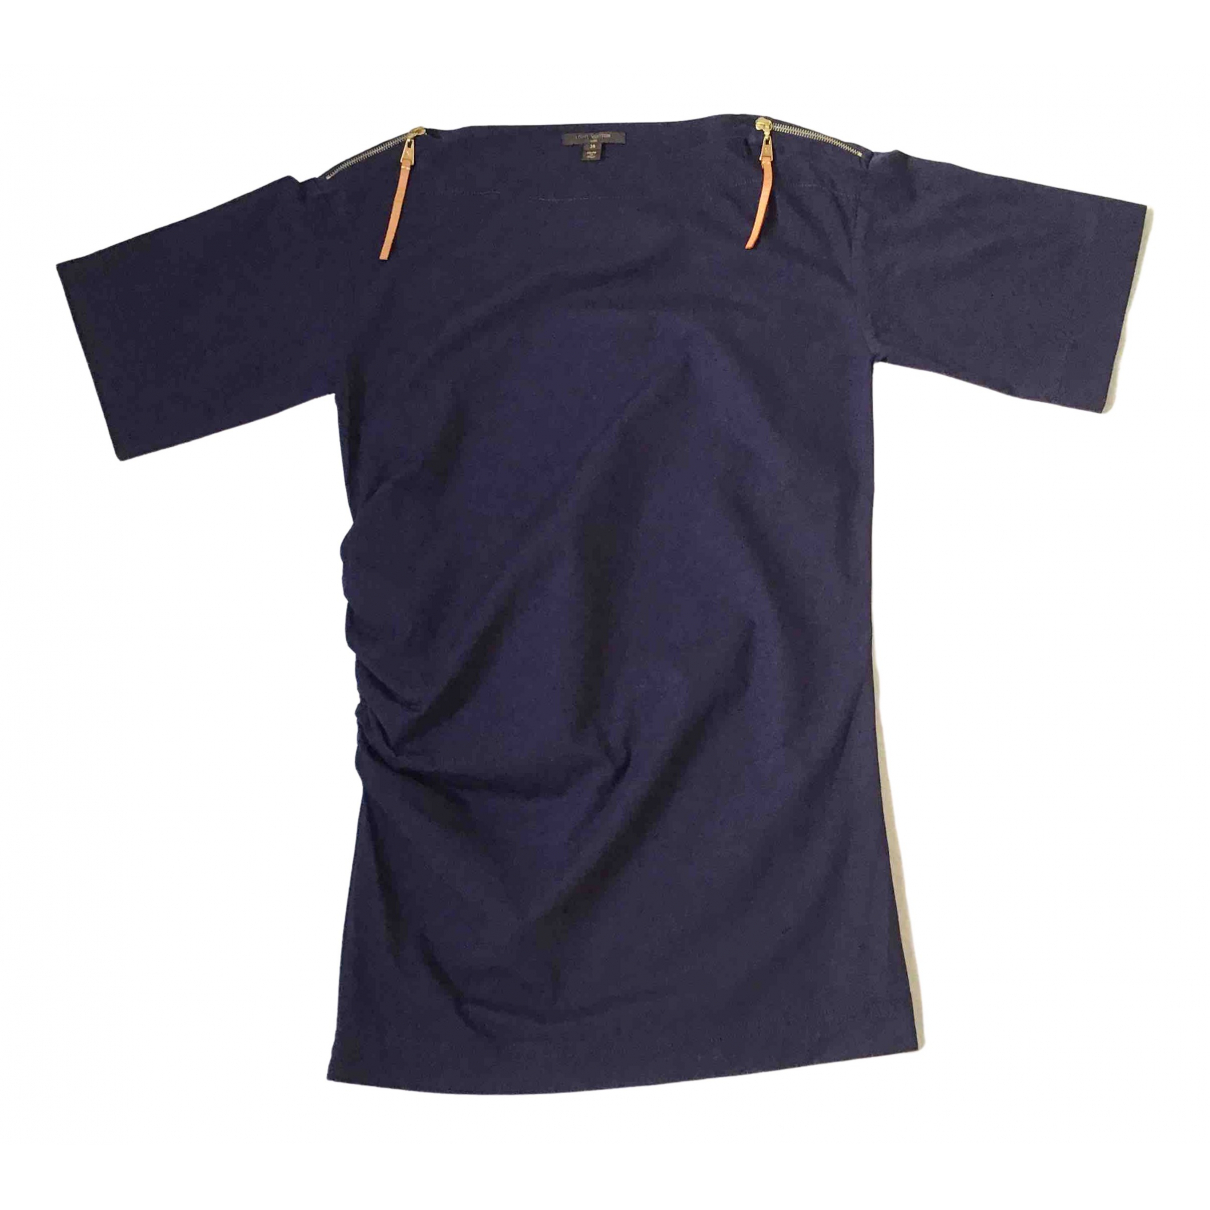 Louis Vuitton \N Navy Cotton dress for Women 36 IT